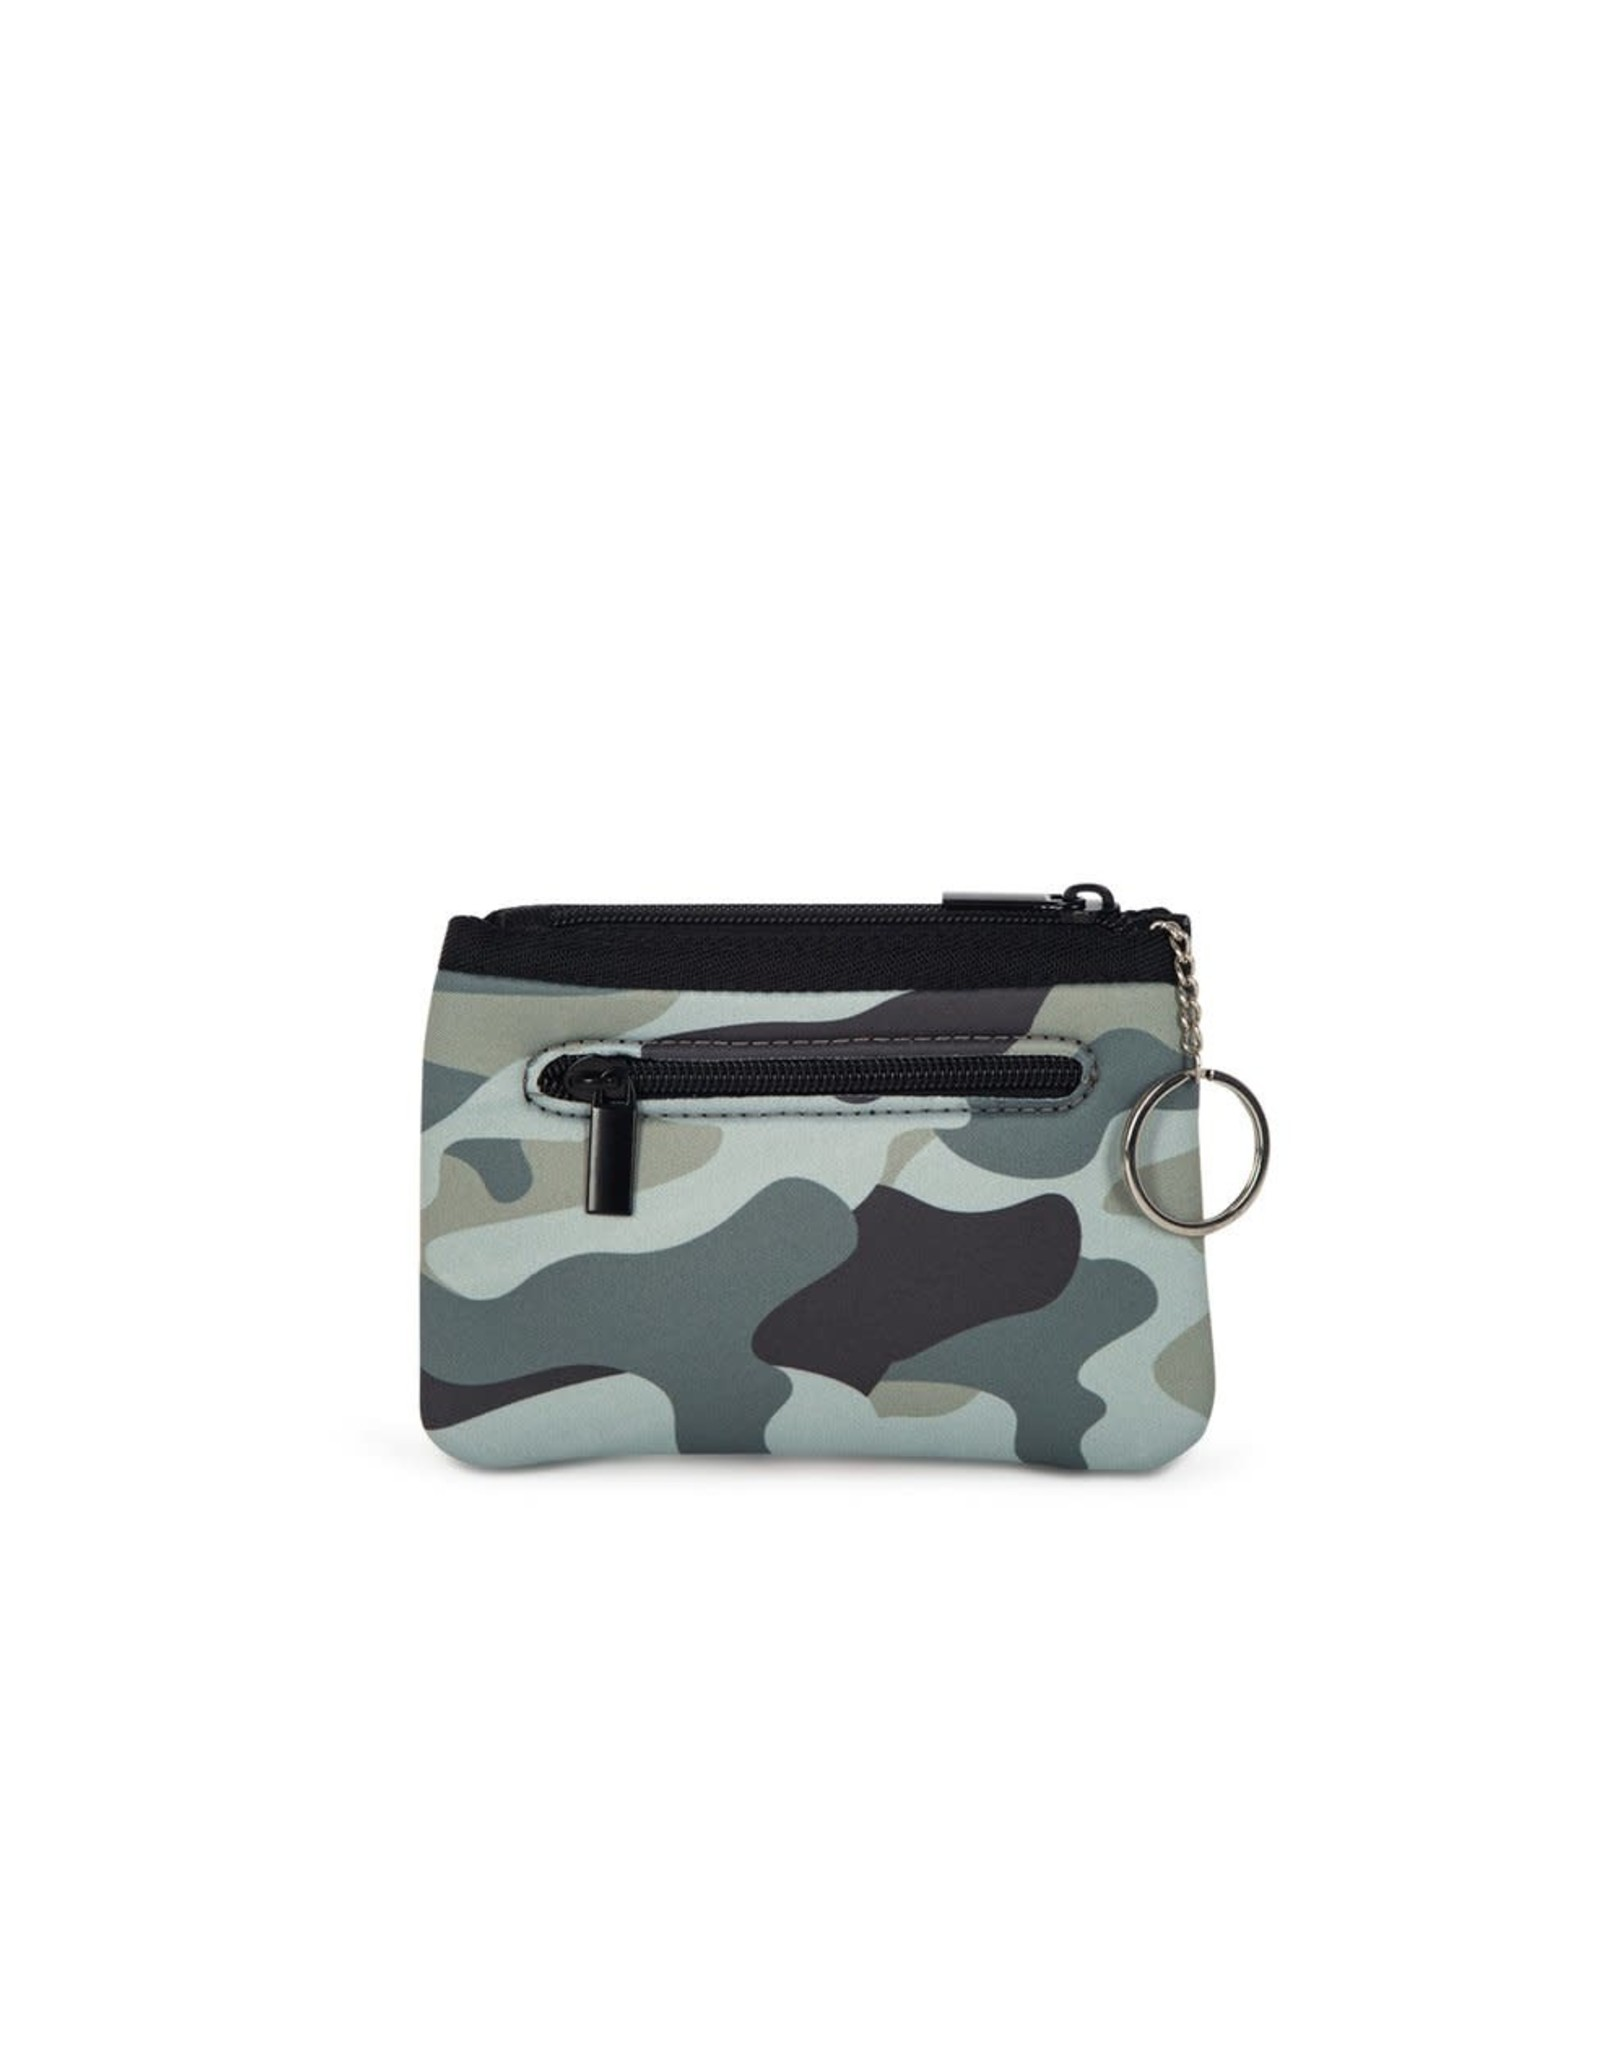 Max Card Case Light Green Camo w/red